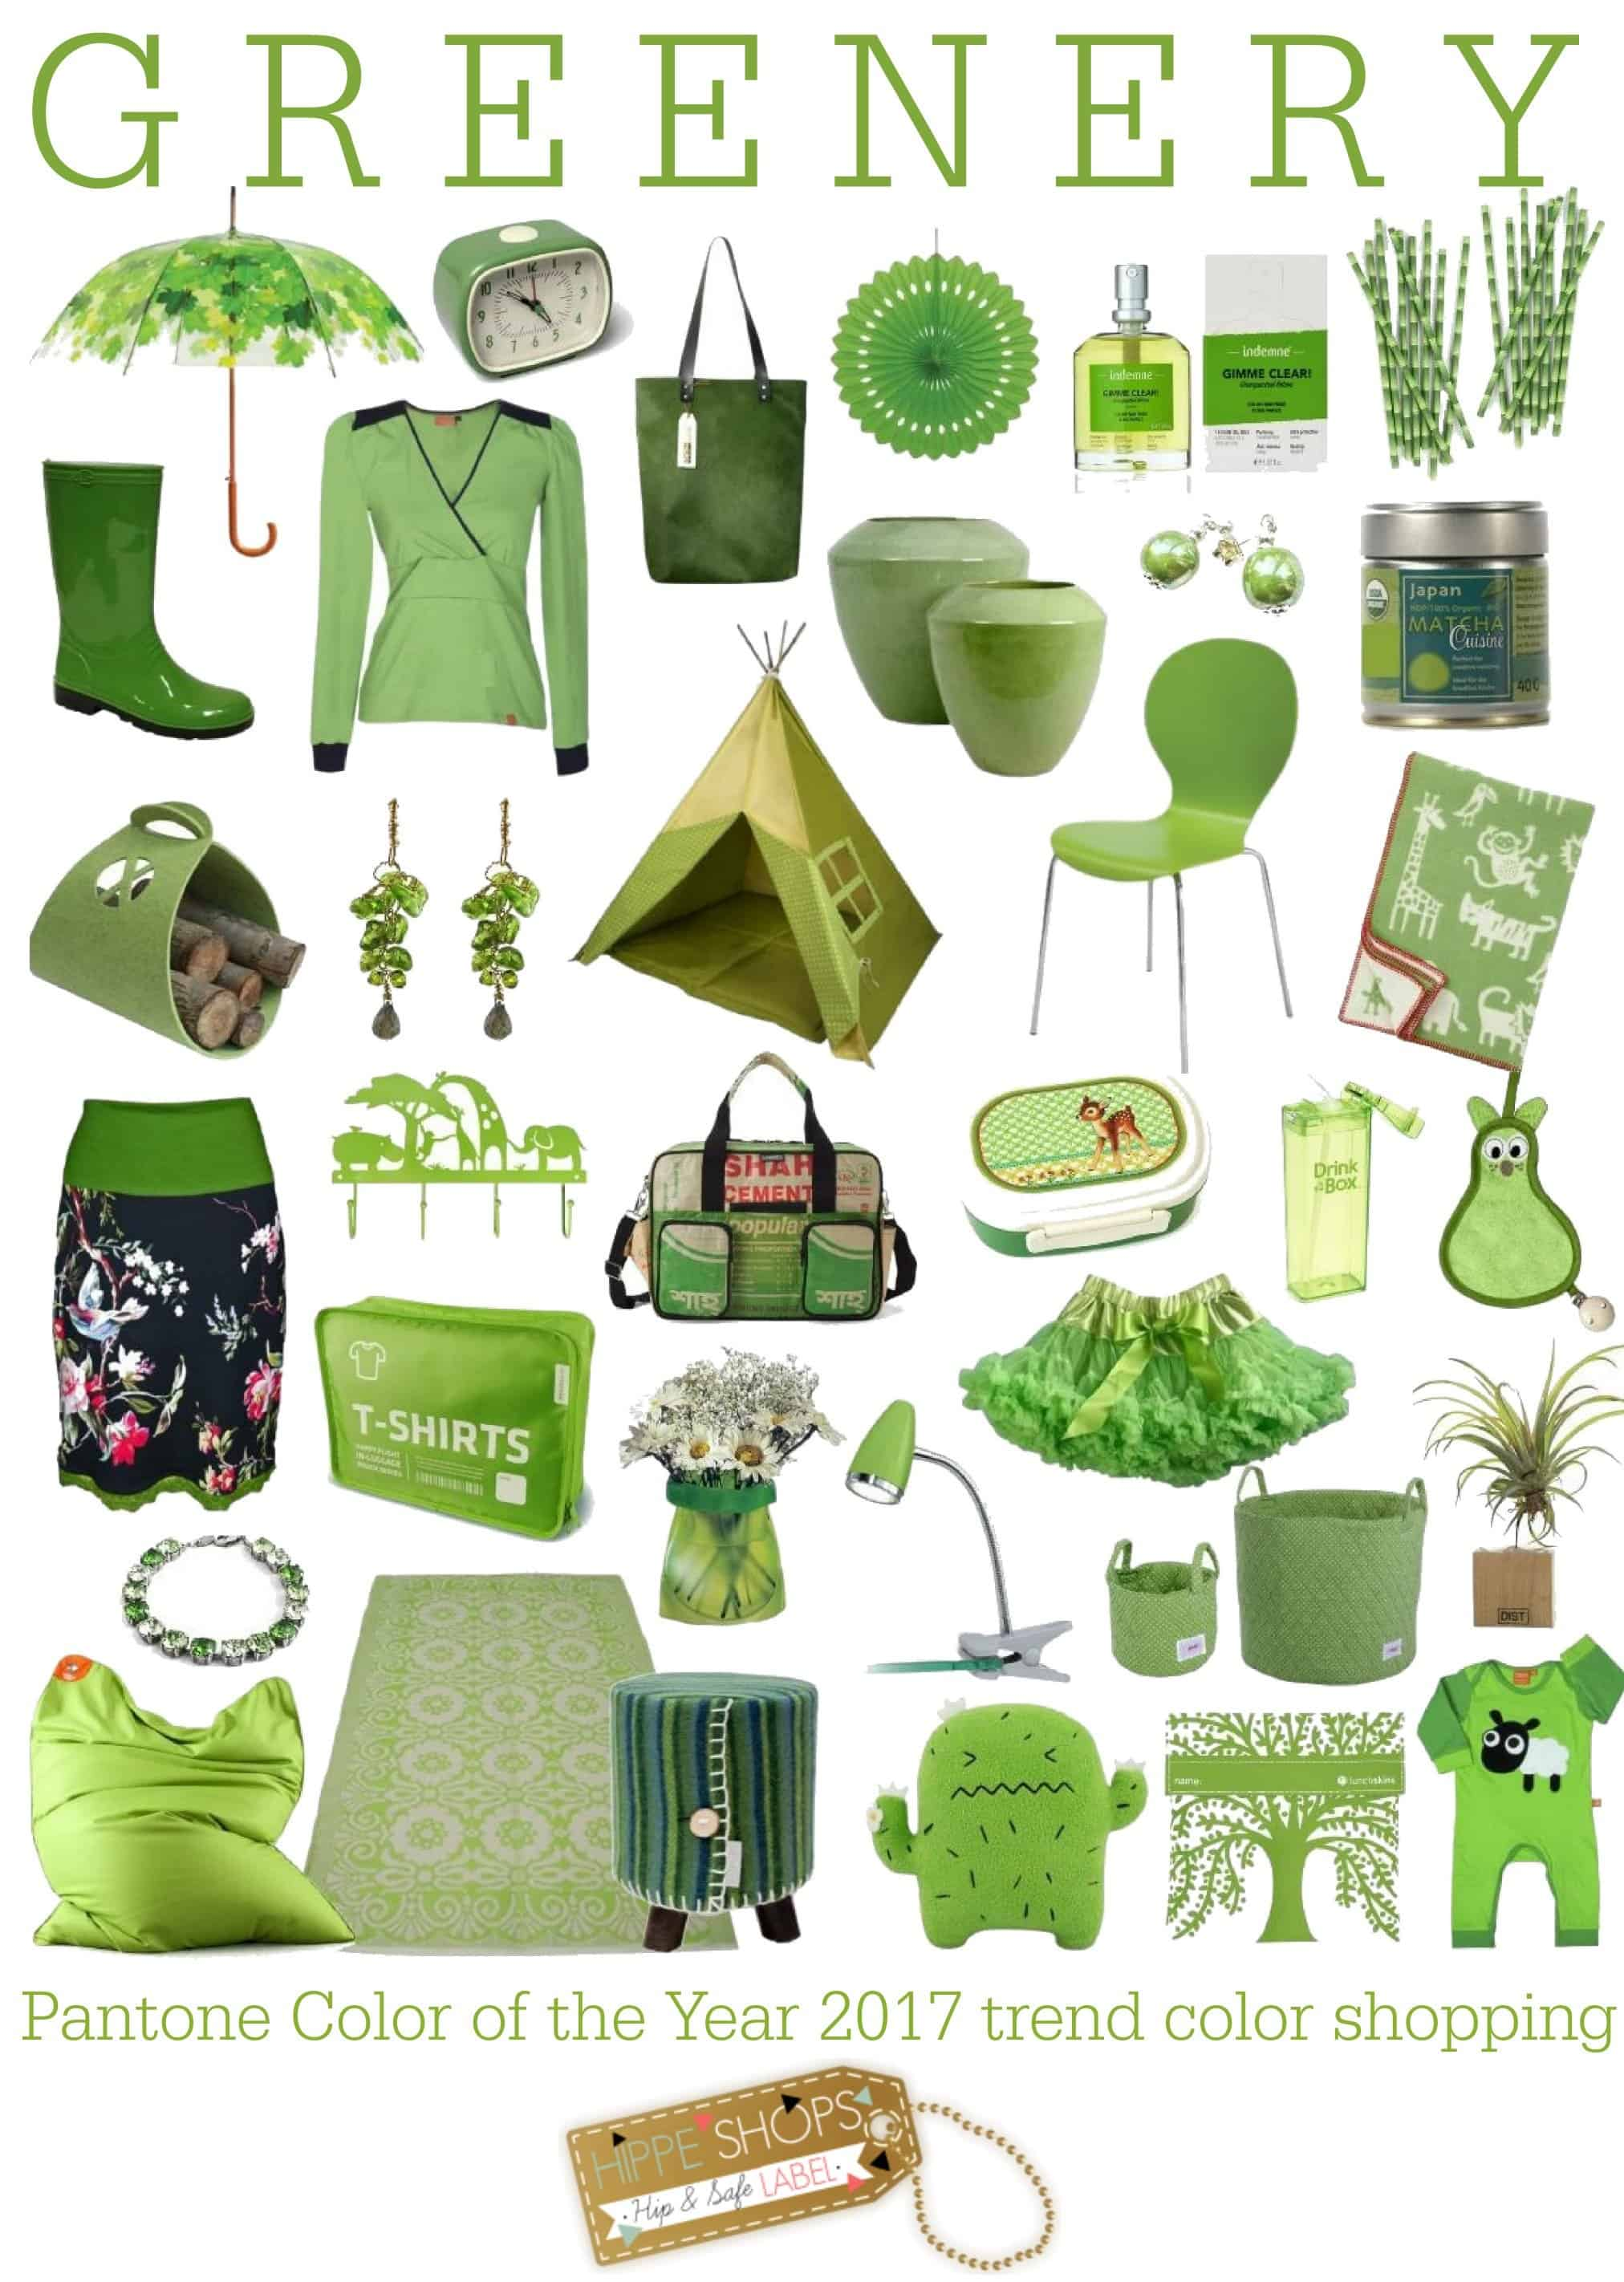 Greenery color shopping: Pantone 2017 trendkleuren